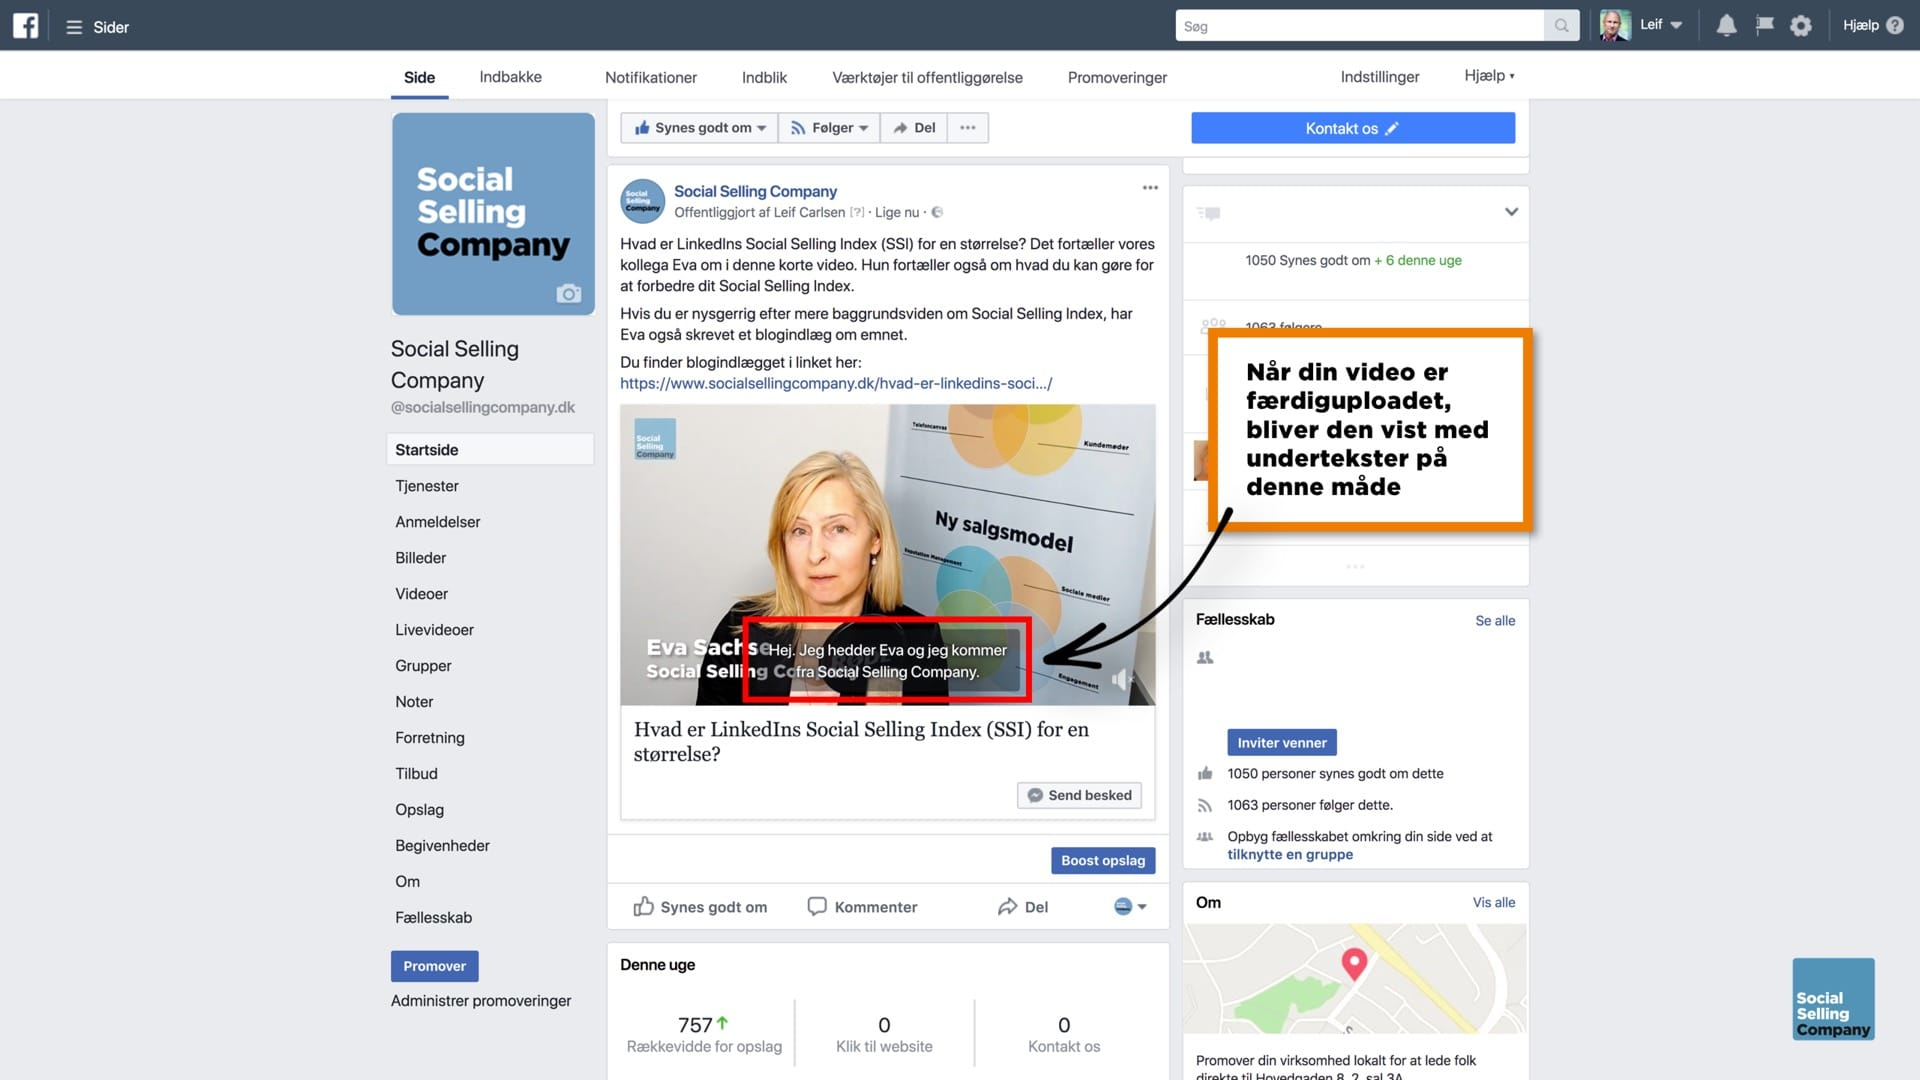 Blogindlæg om hvordan du får undertekster på en video på LinkedIn, Facebook og YouTube